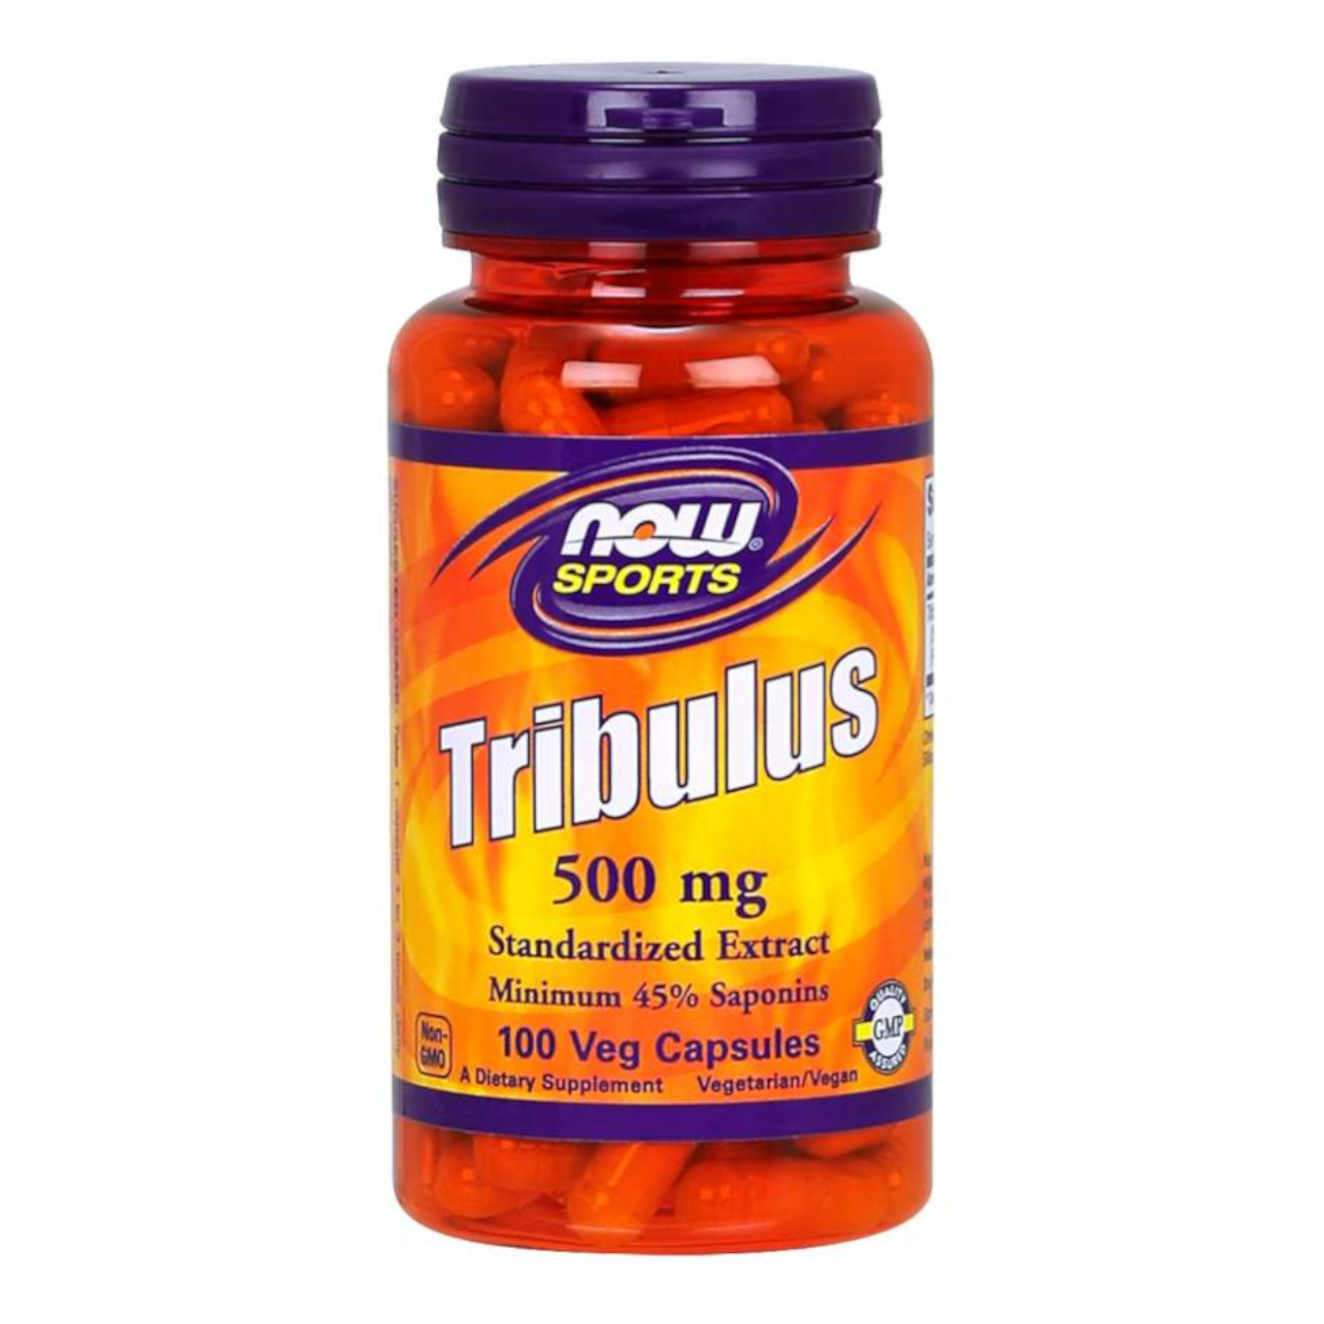 TRIBULUS 500mg - 100 veg caps